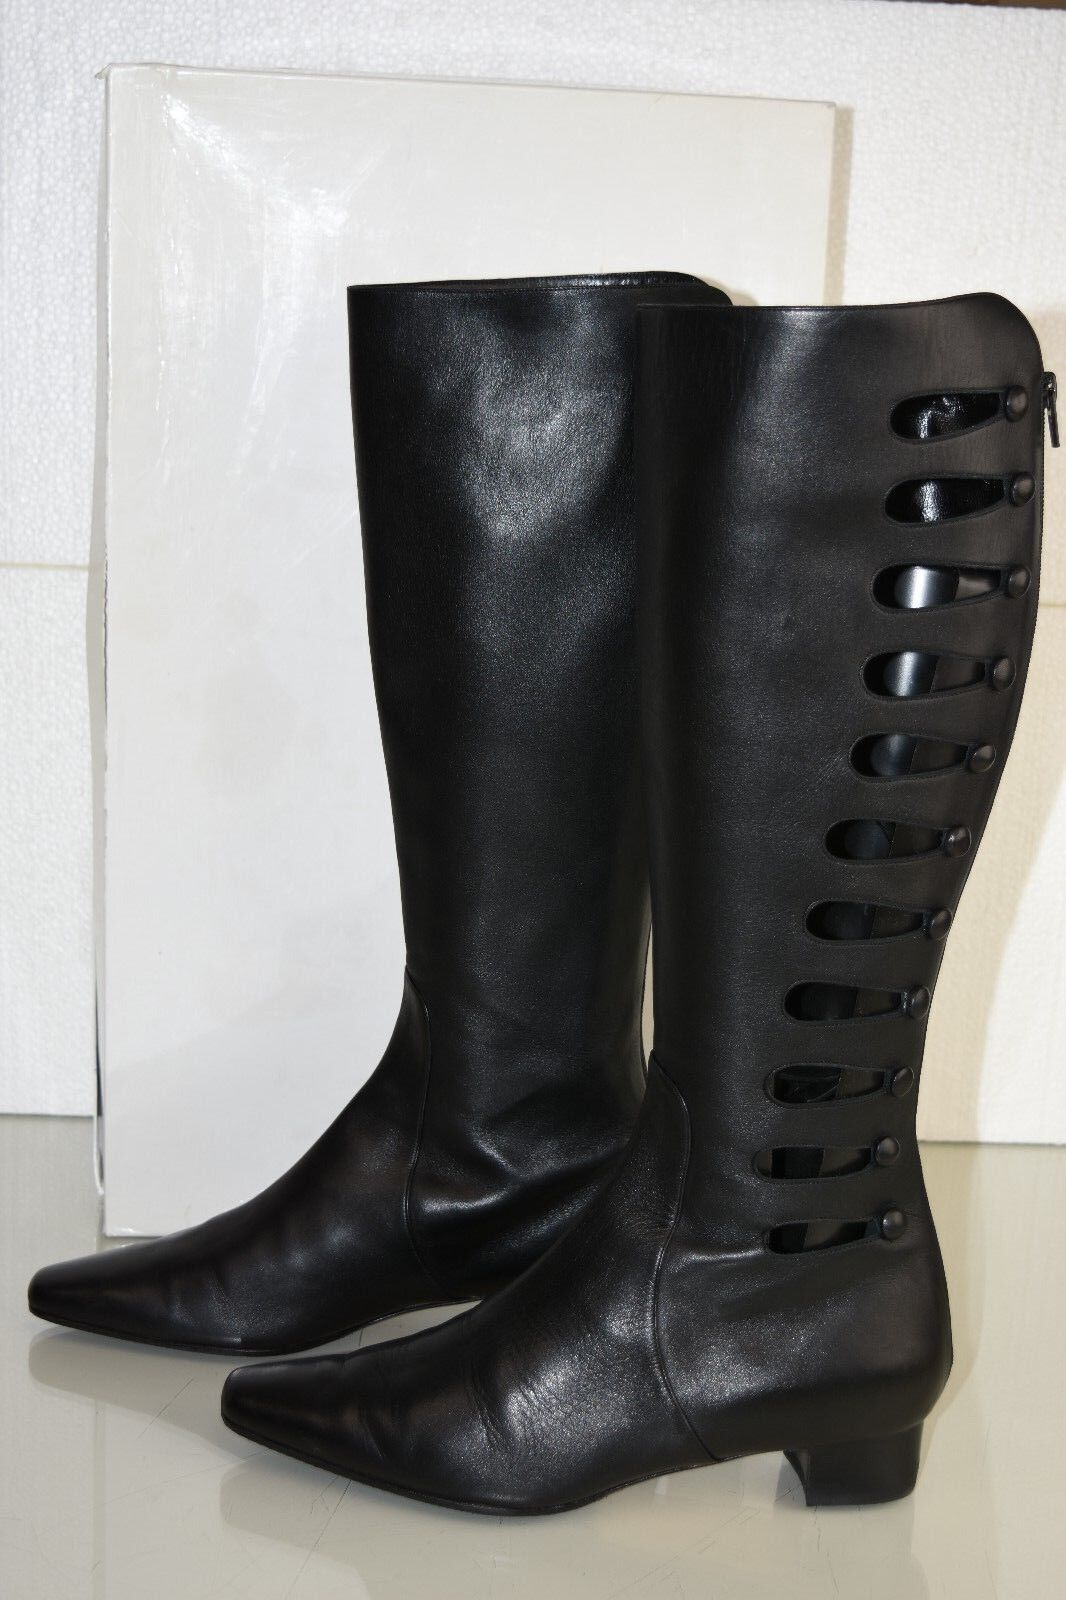 NEW MANOLO BLAHNIK ROMOLINO BOOTS BLACK LEATHER BACK ZIP SHOES 41.5